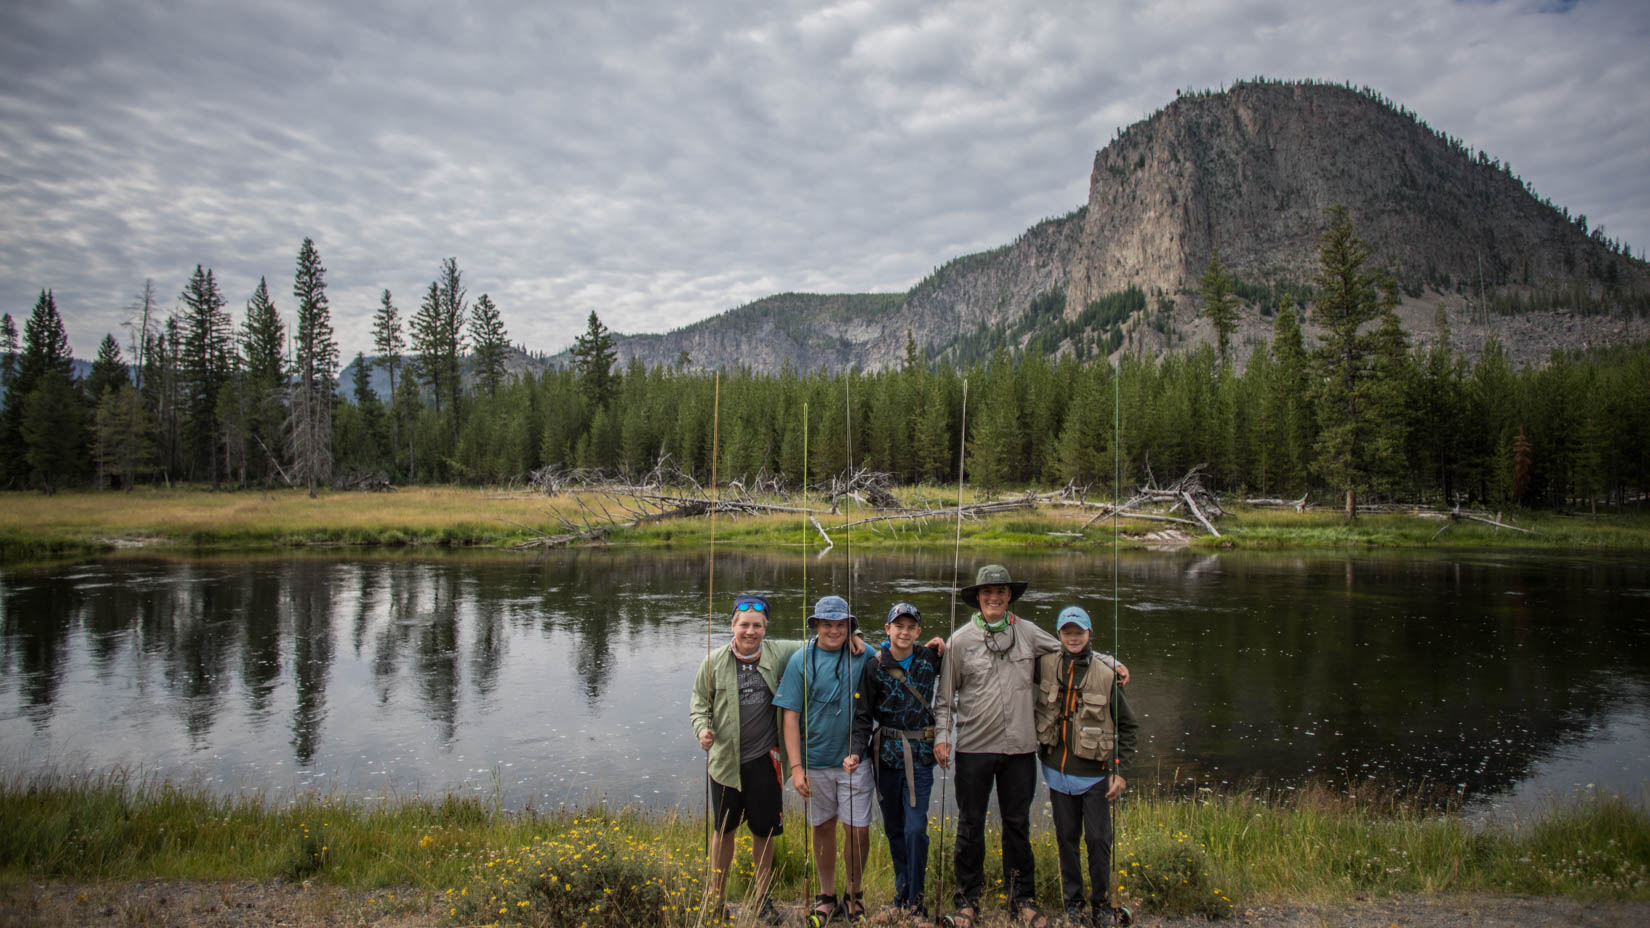 Group of travelers by a lake in Yosemite